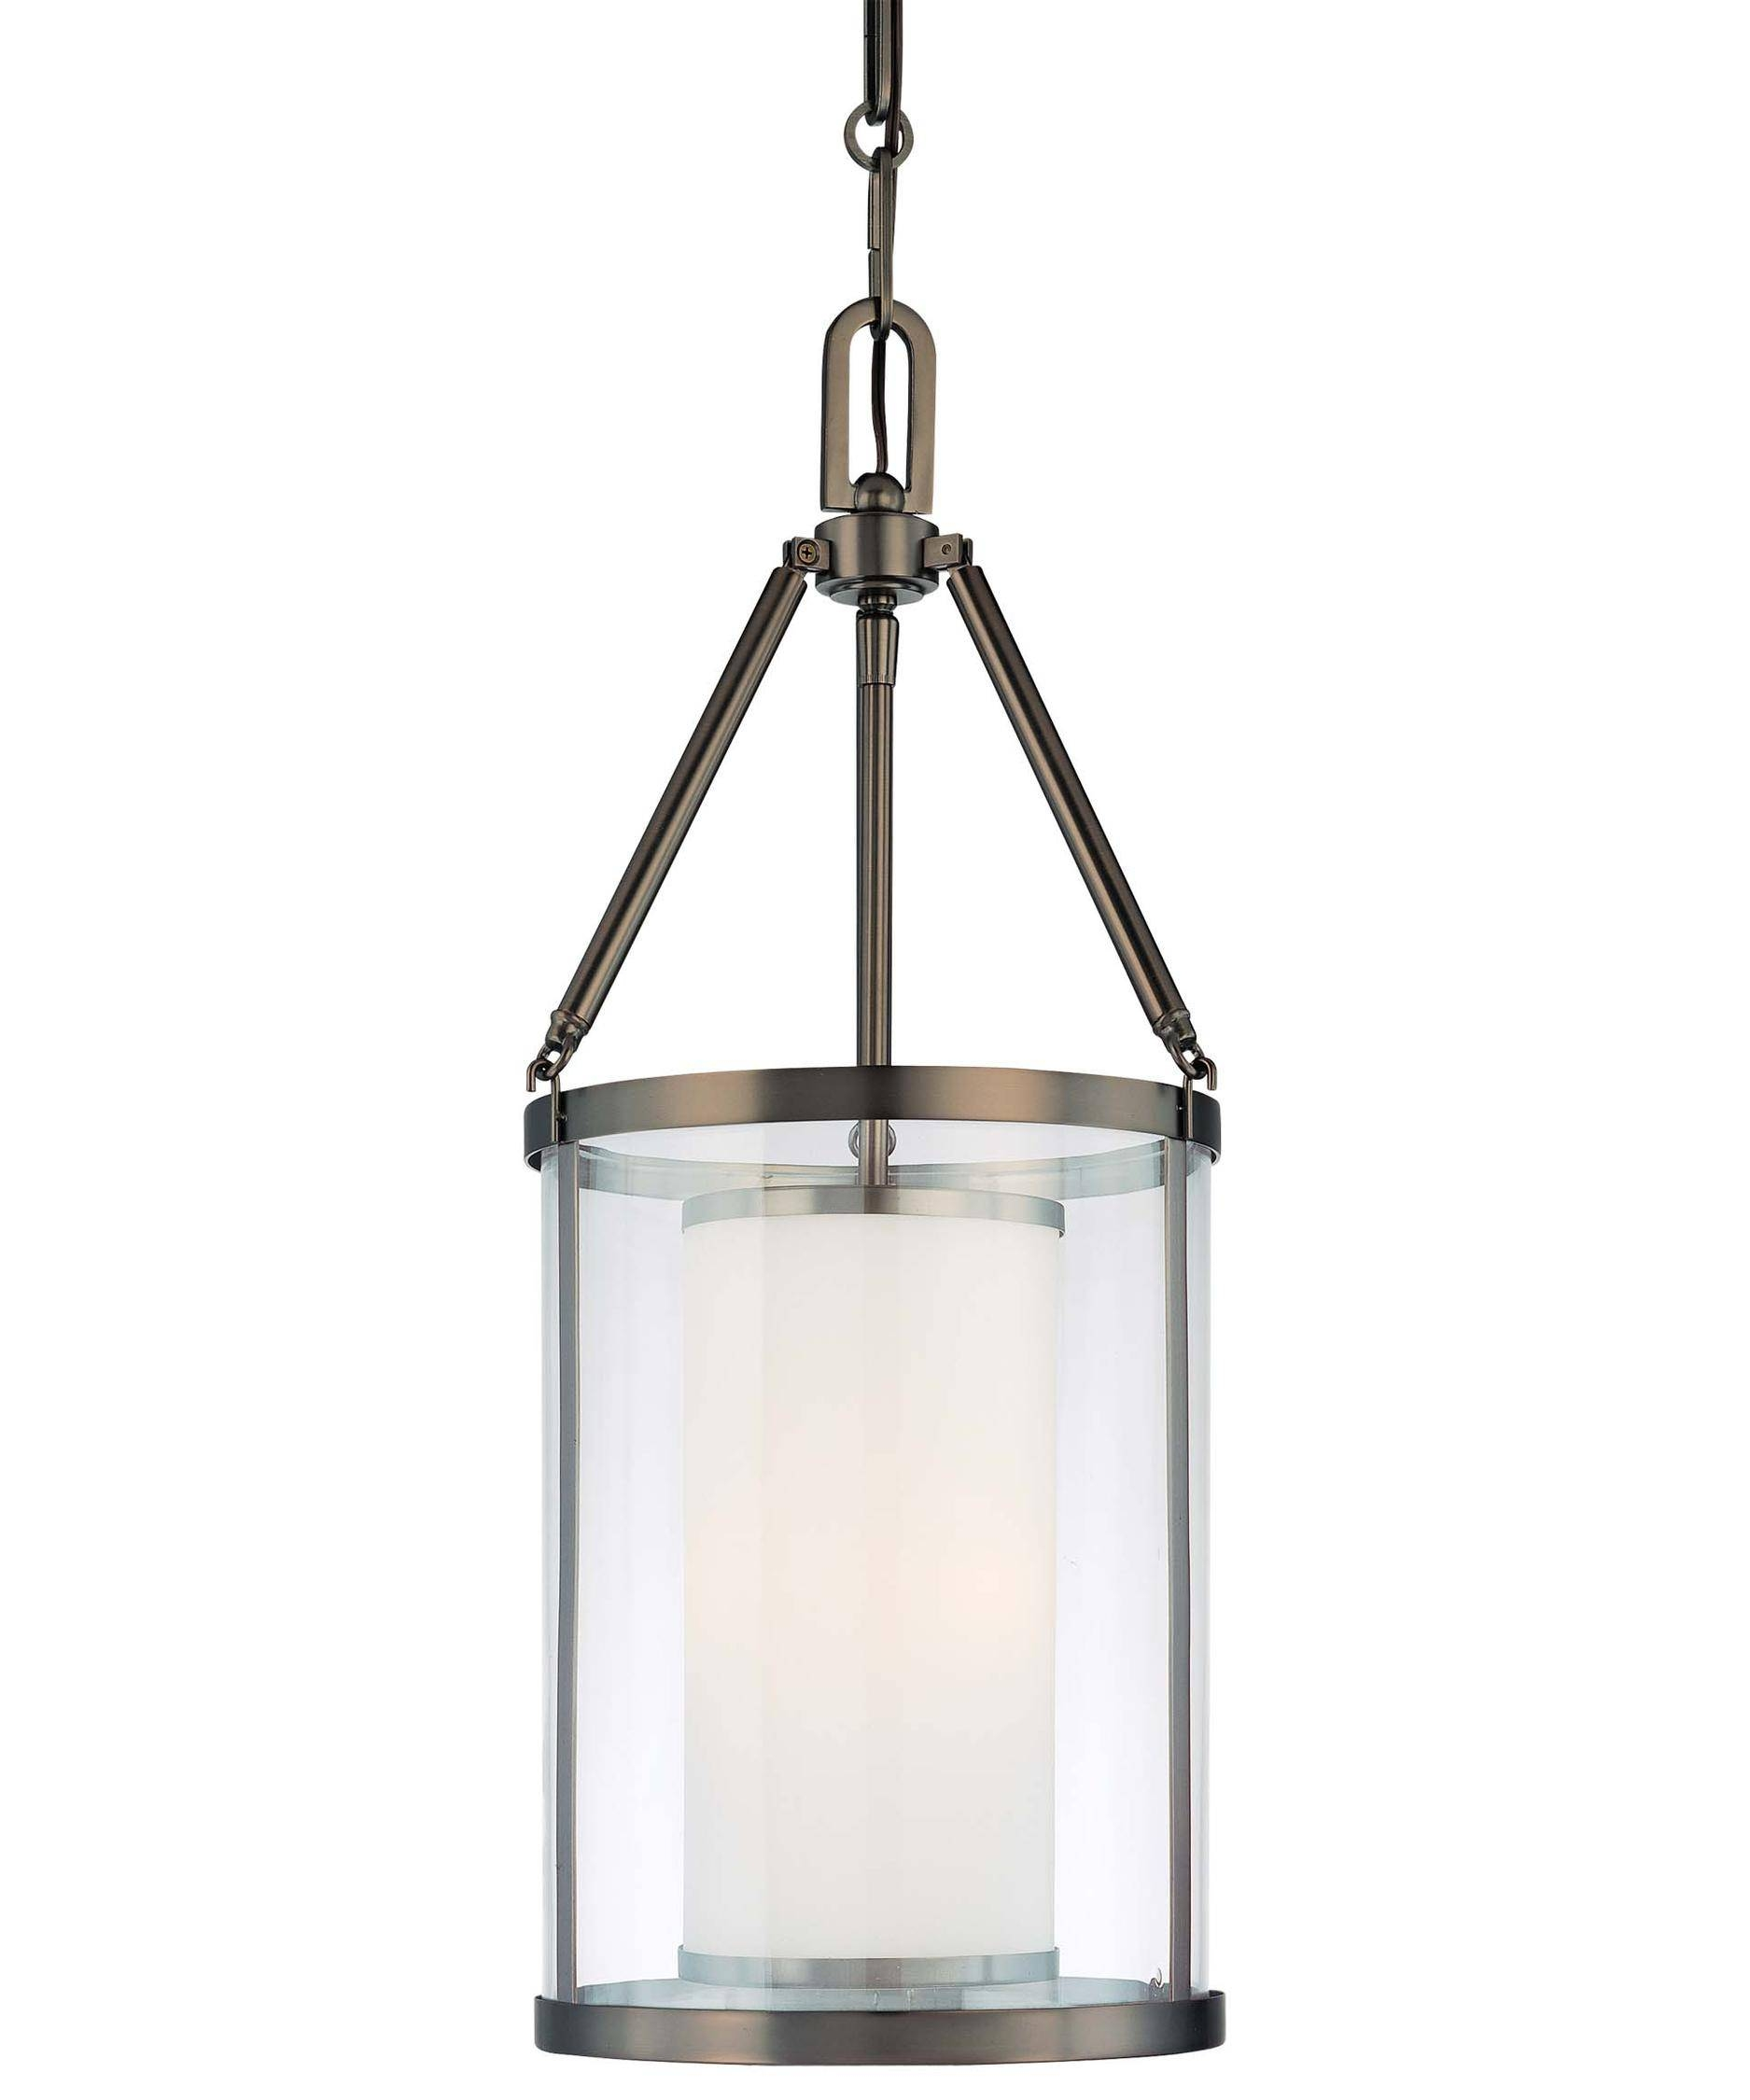 About Minka Lighting Manufactures | Light Decorating Ideas inside Minka Lavery Pendant Lights (Image 1 of 15)